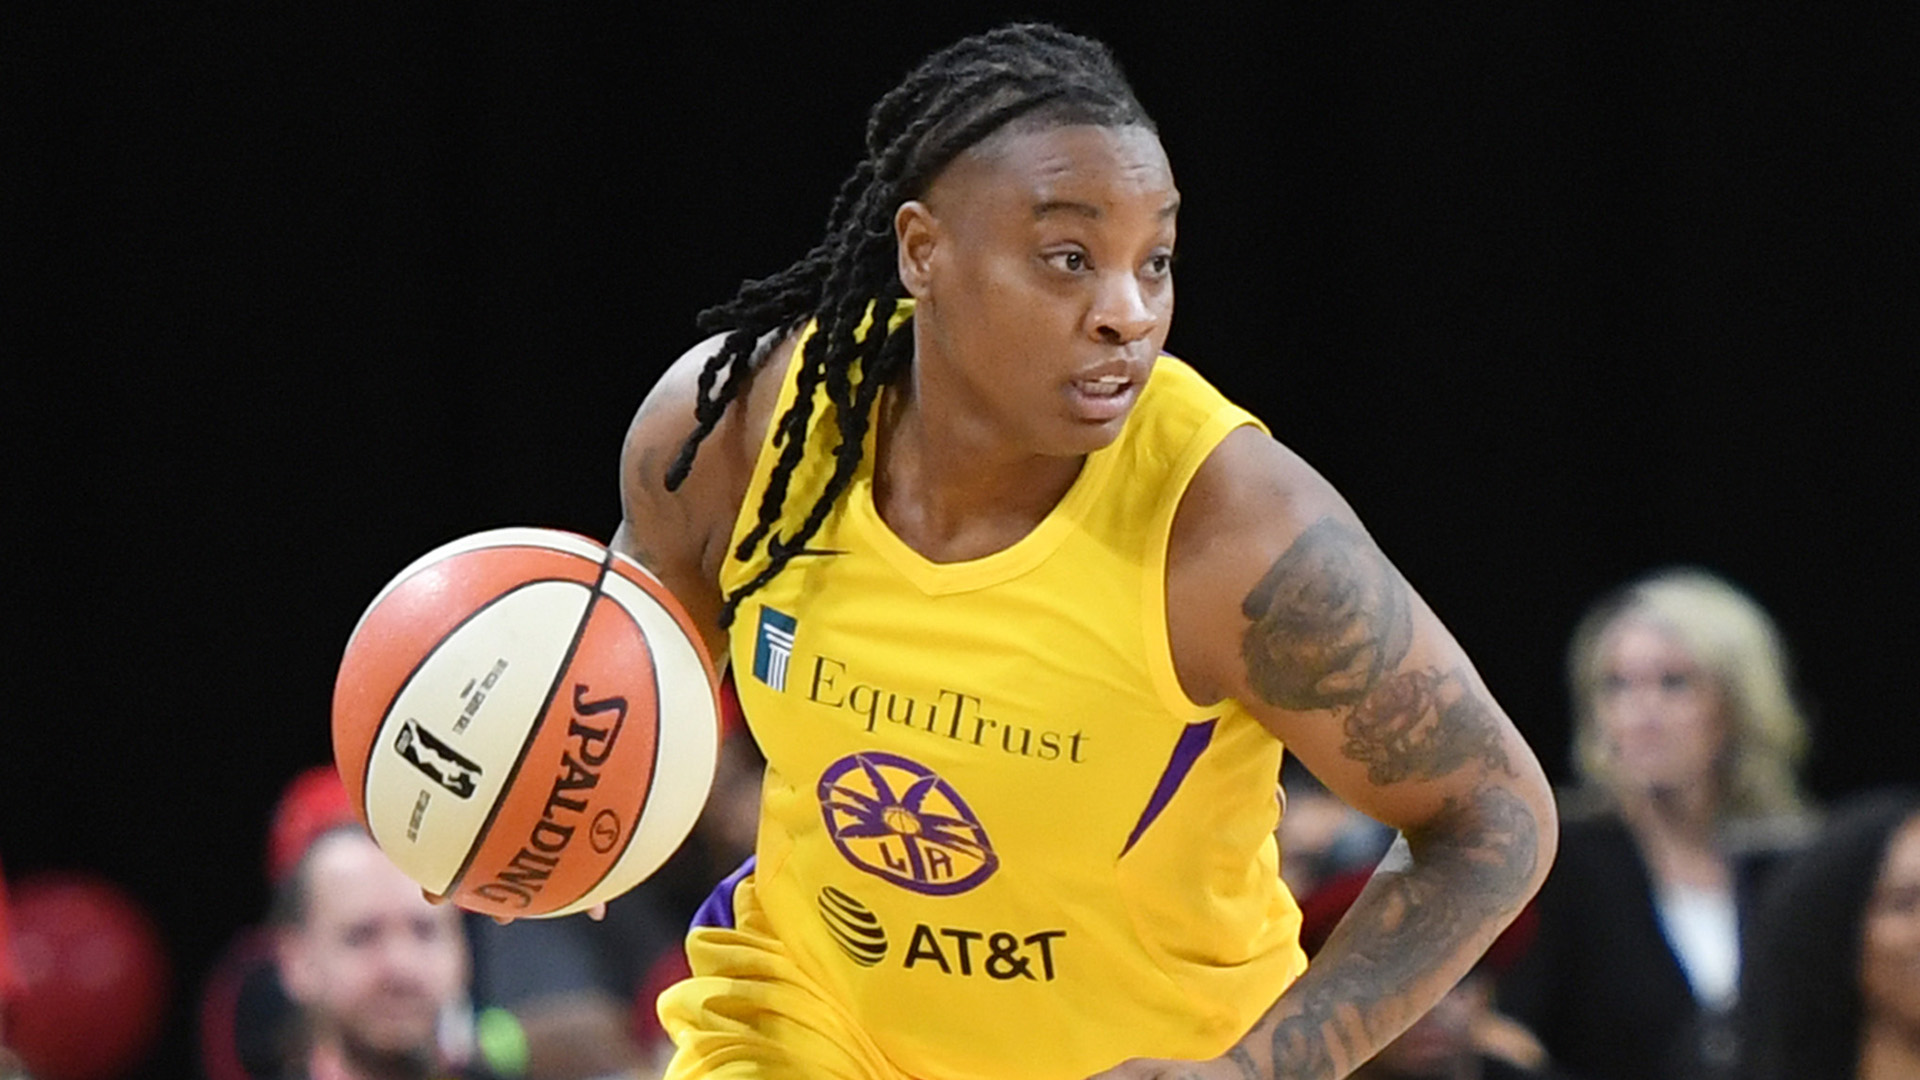 Riquna Williams #2 of the Los Angeles Sparks brings the ball up the court against the Las Vegas Aces during their game at the Mandalay Bay Events Center on May 26, 2019 in Las Vegas, Nevada. (Credit: Ethan Miller/Getty Images)